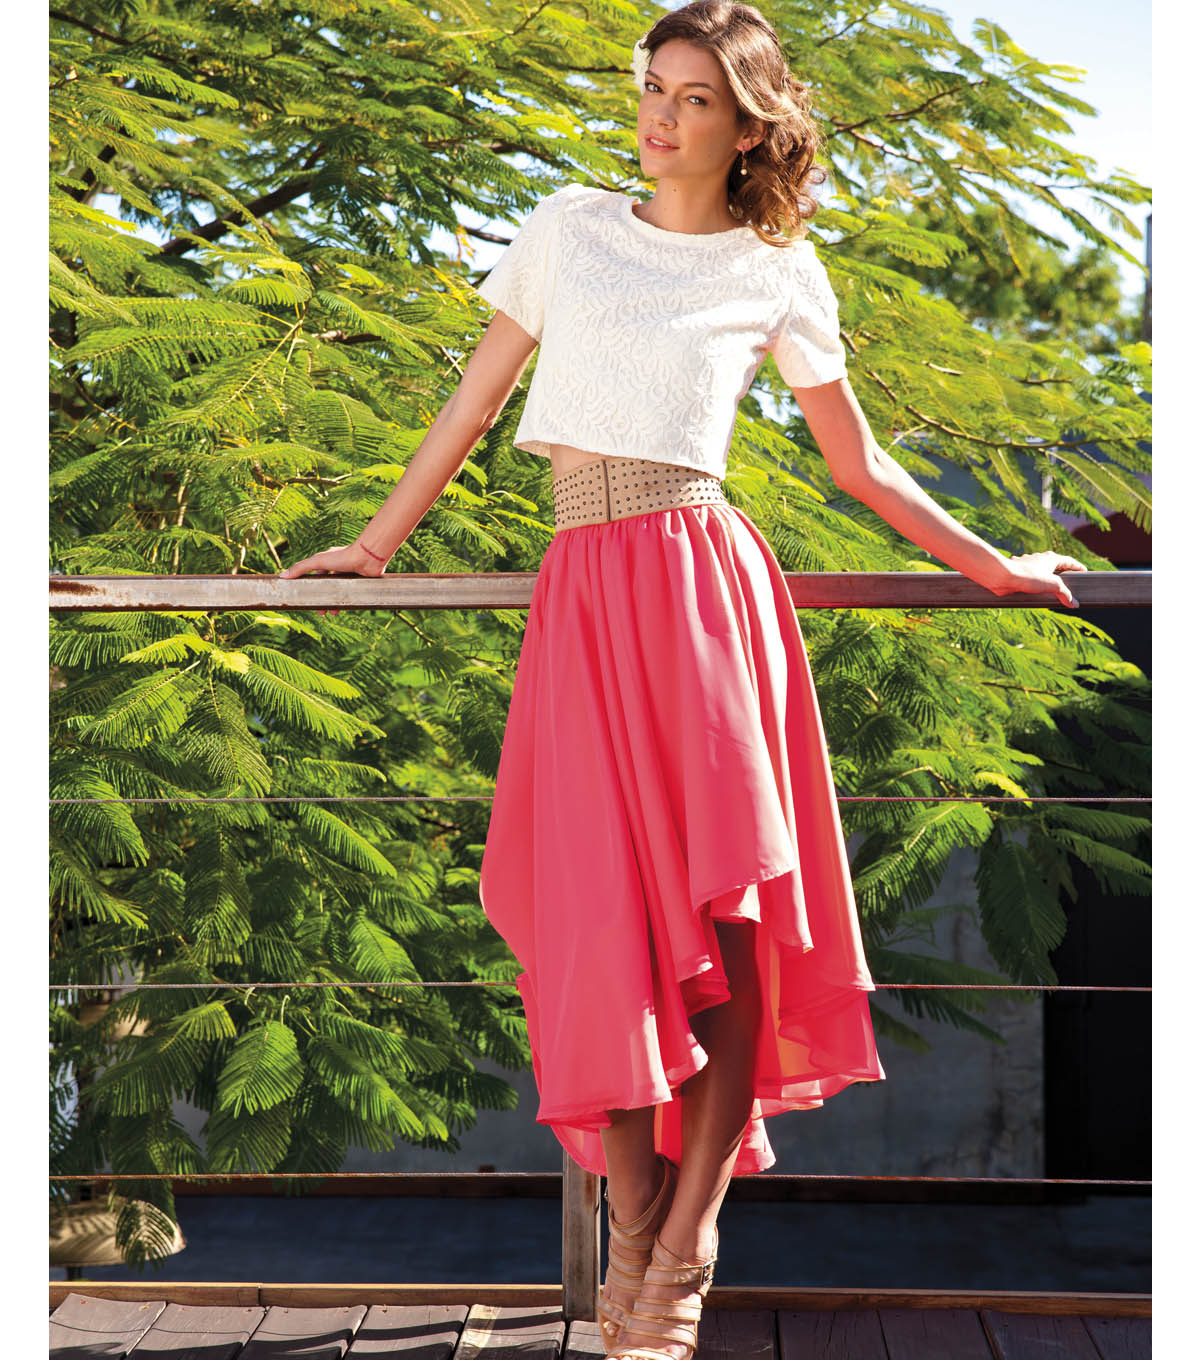 Lace Crop Top and Chiffon Wrap Skirt